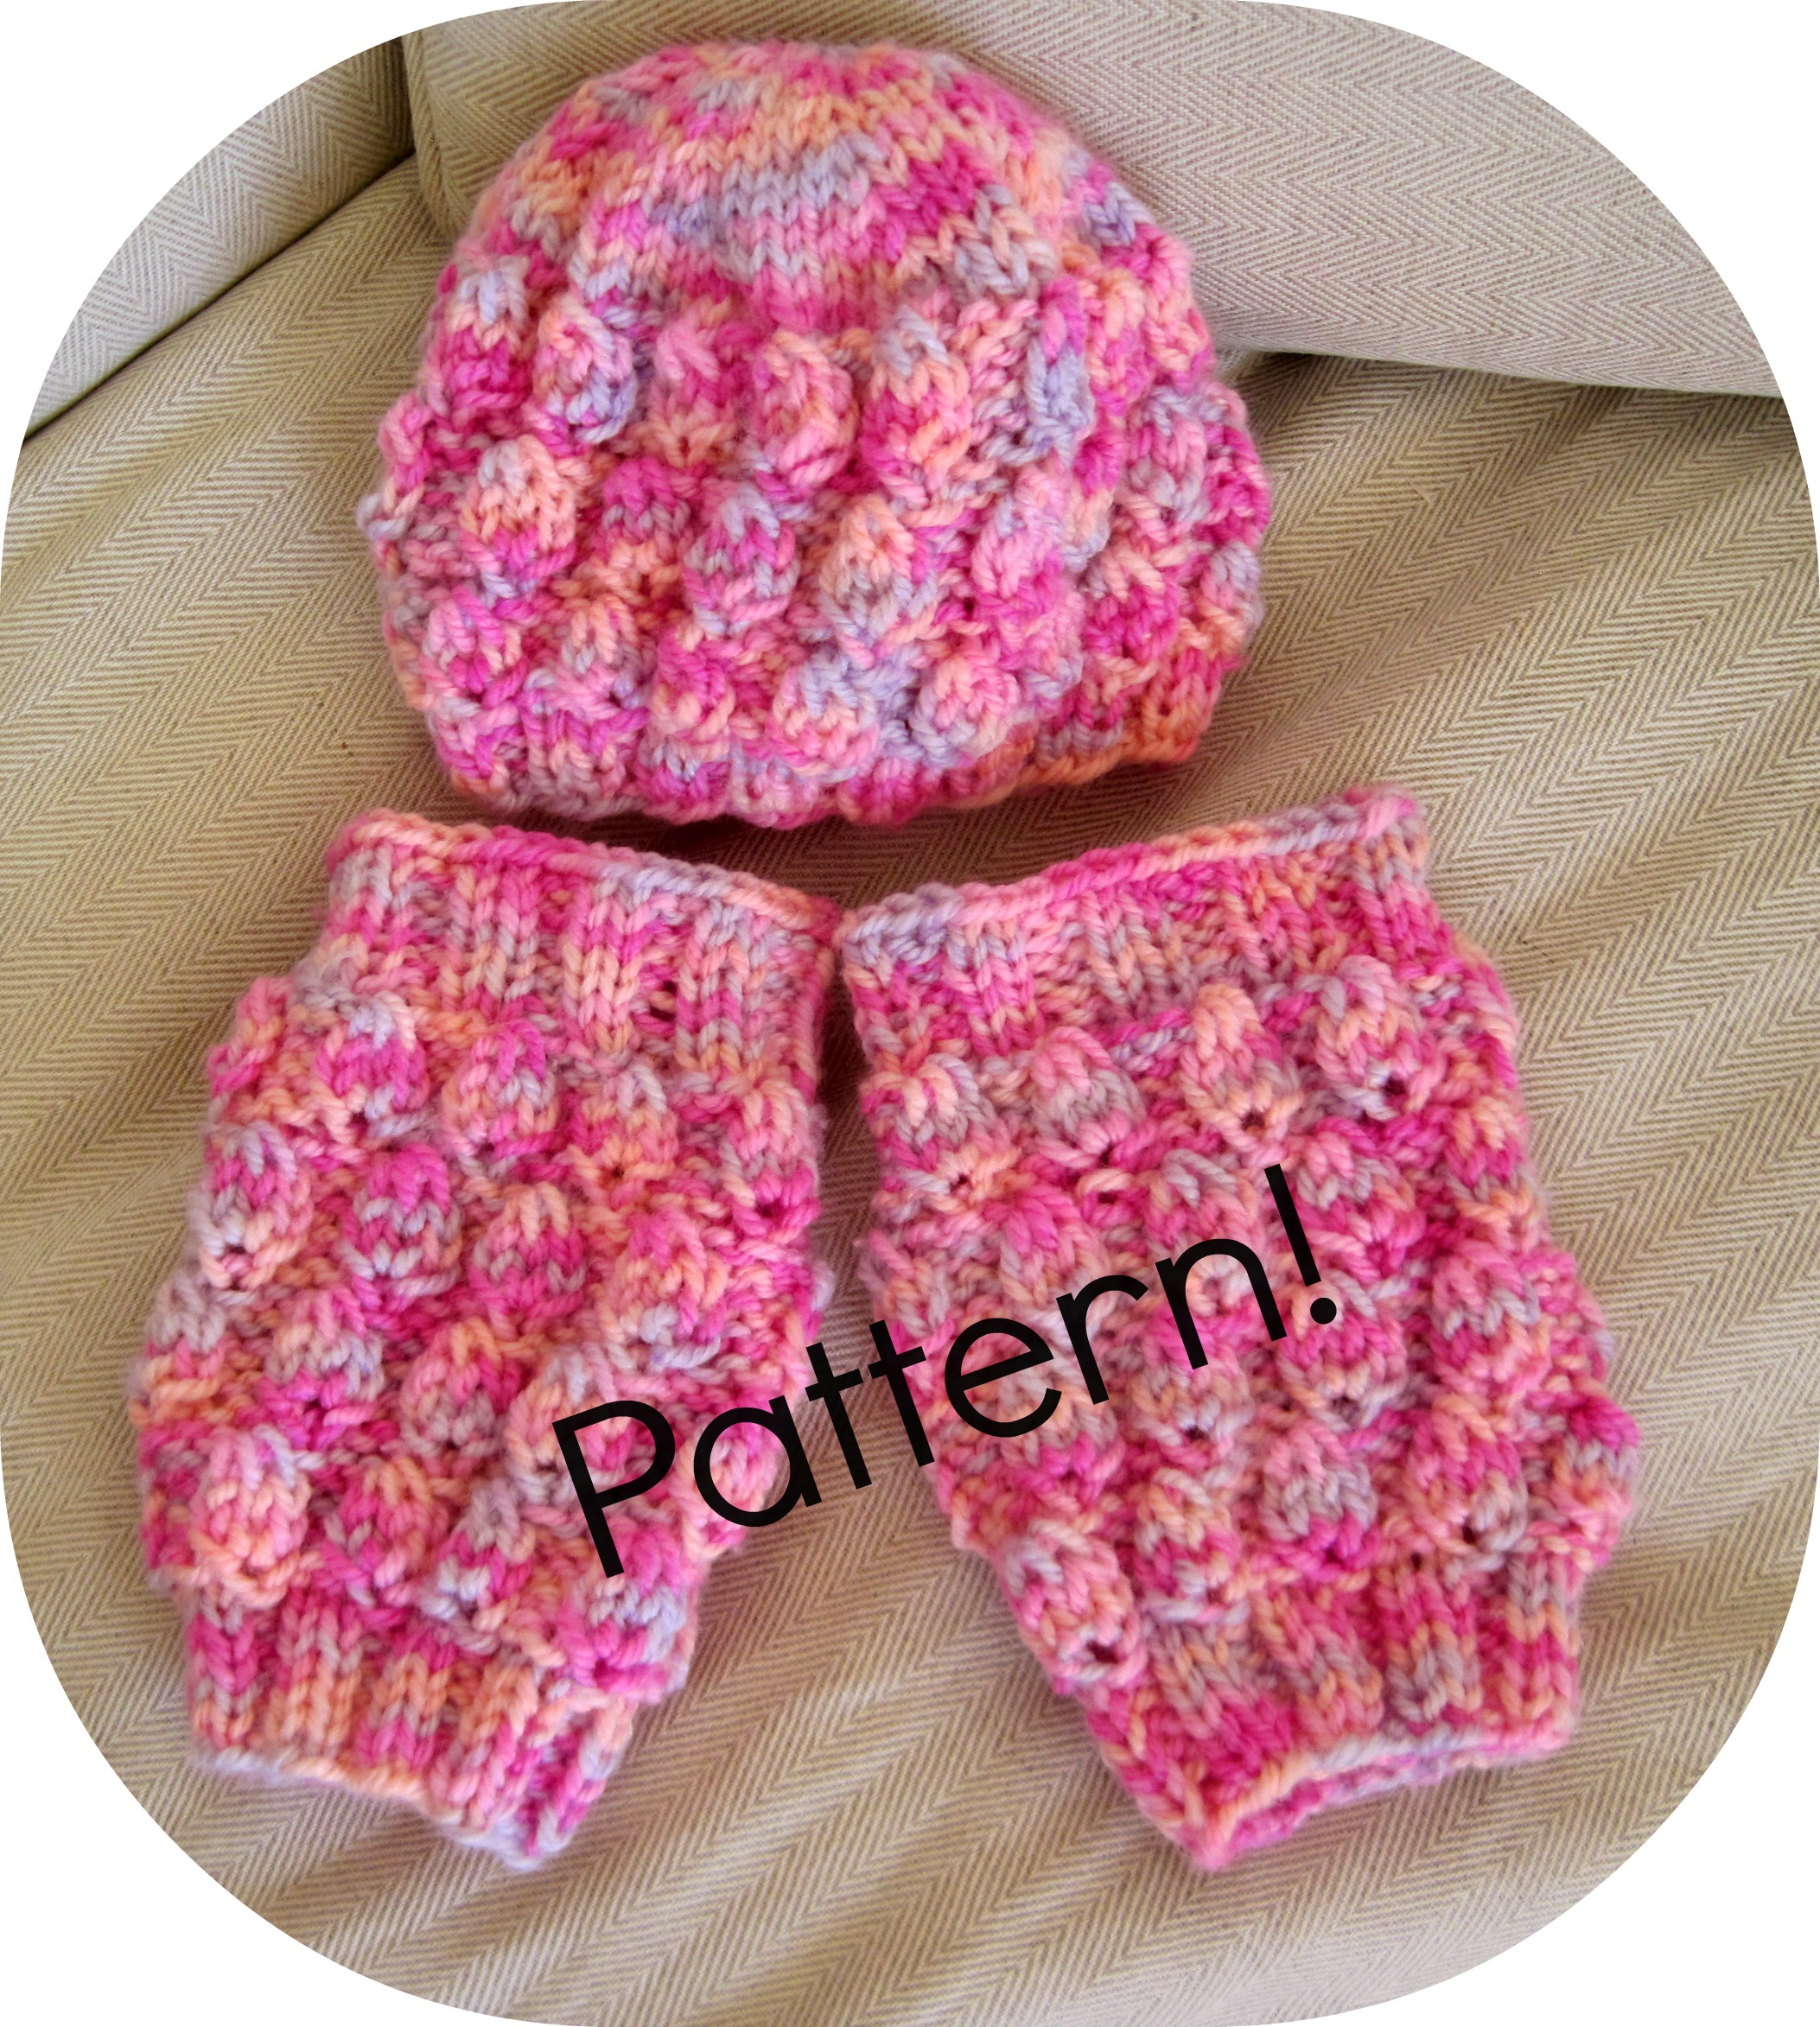 Knitting Leg Warmers Pattern : Knitting Baby Set Pattern, Hat And Leg Warmers - Knitting Tutorial PDF on Luulla